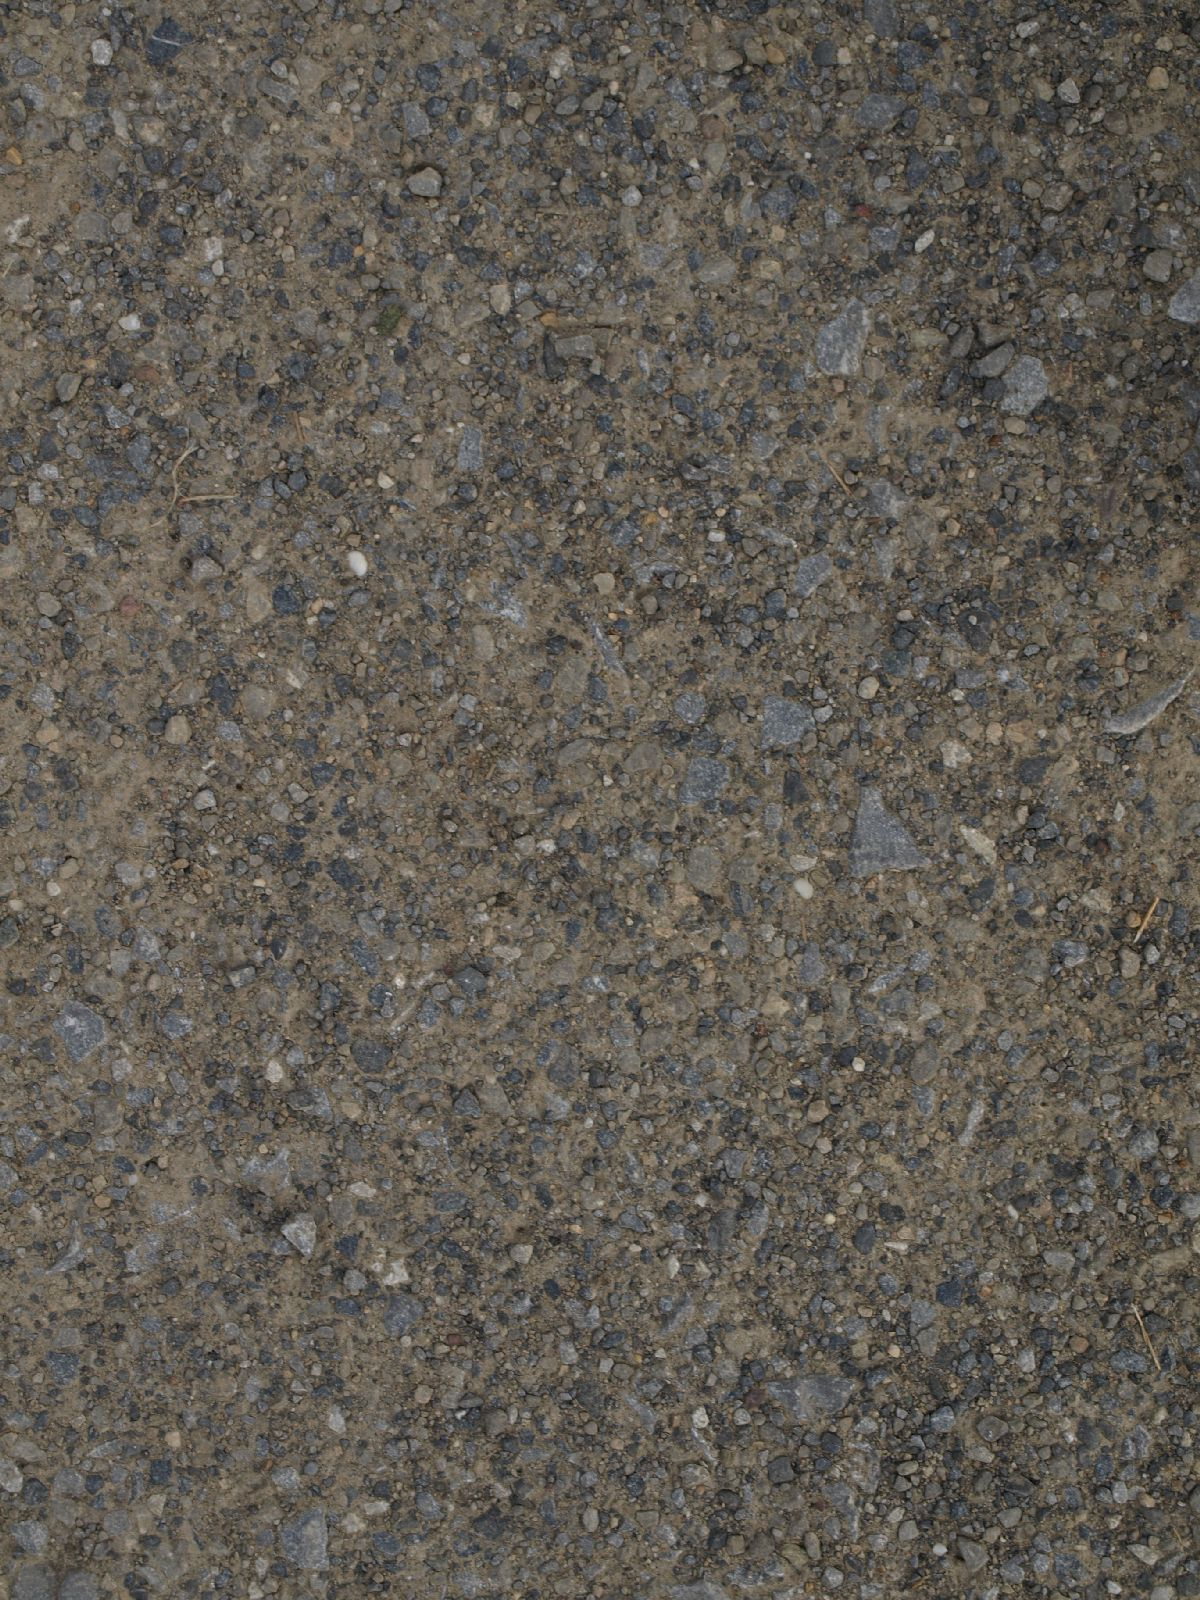 Ground-Nature_Texture_A_P8174447